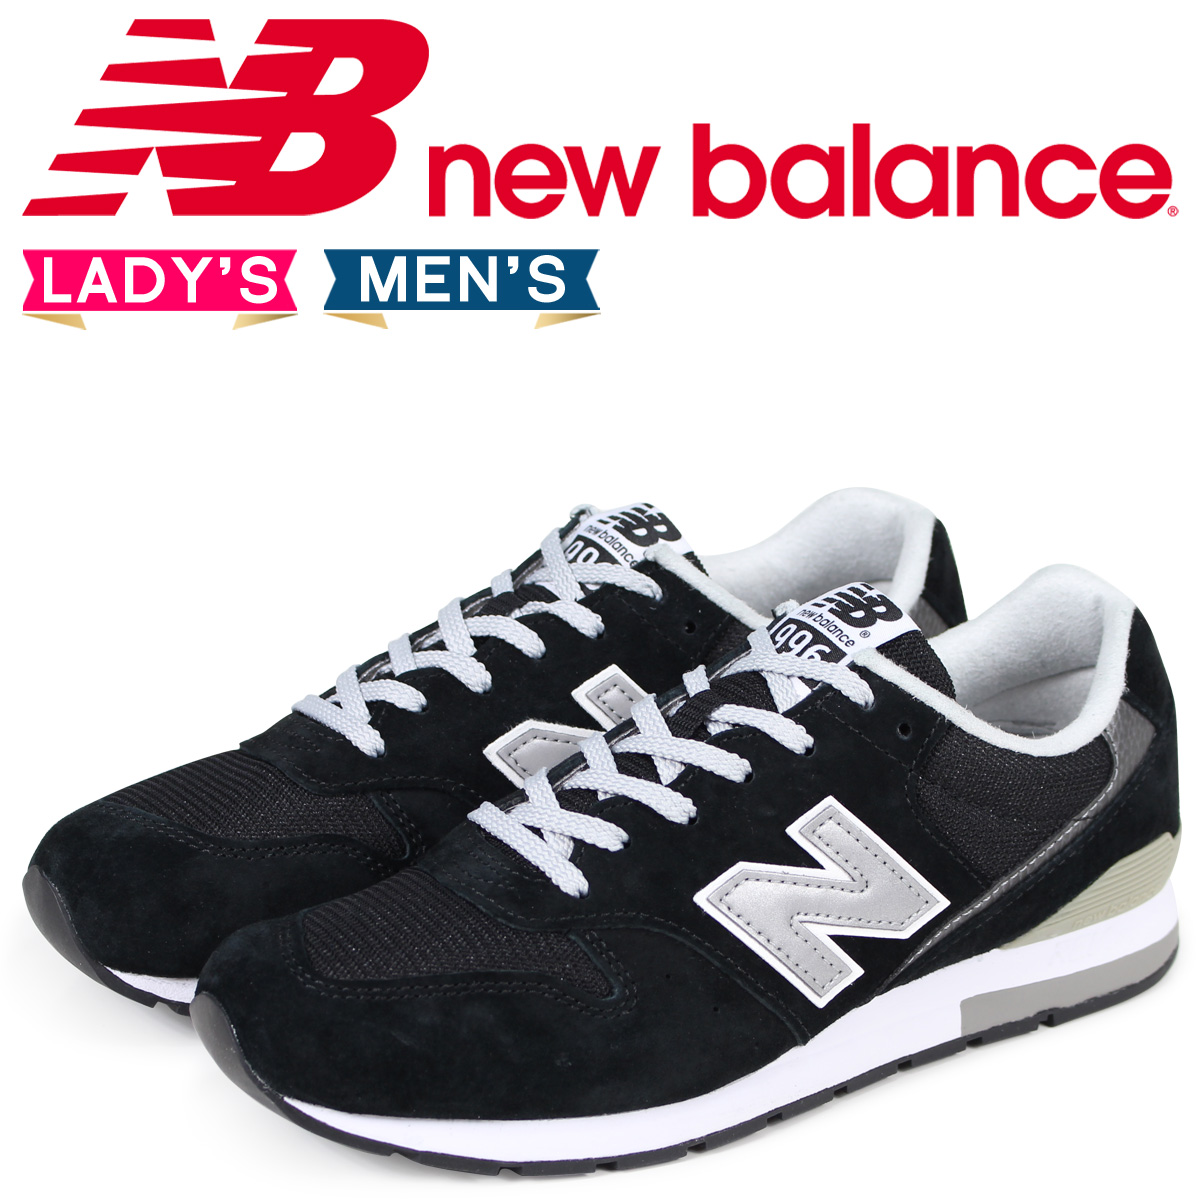 5c25e87783274 Sugar Online Shop: new balance 996 lady's men's New Balance sneakers  MRL996BL D Wise shoes black black | Rakuten Global Market